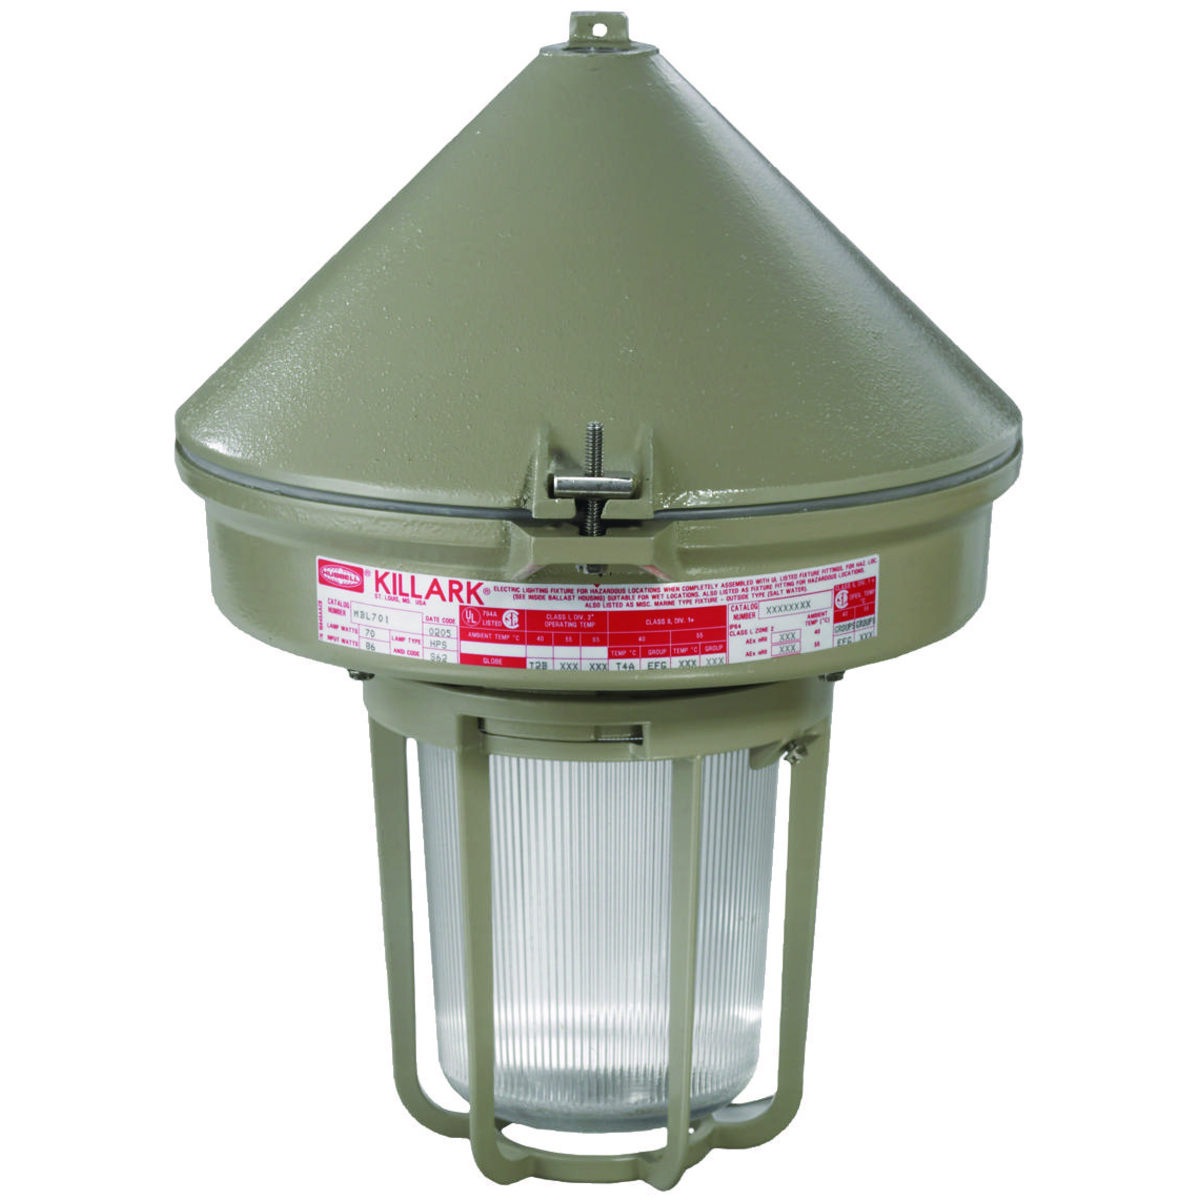 Killark Led High Bay: VM1L4530C2R5G